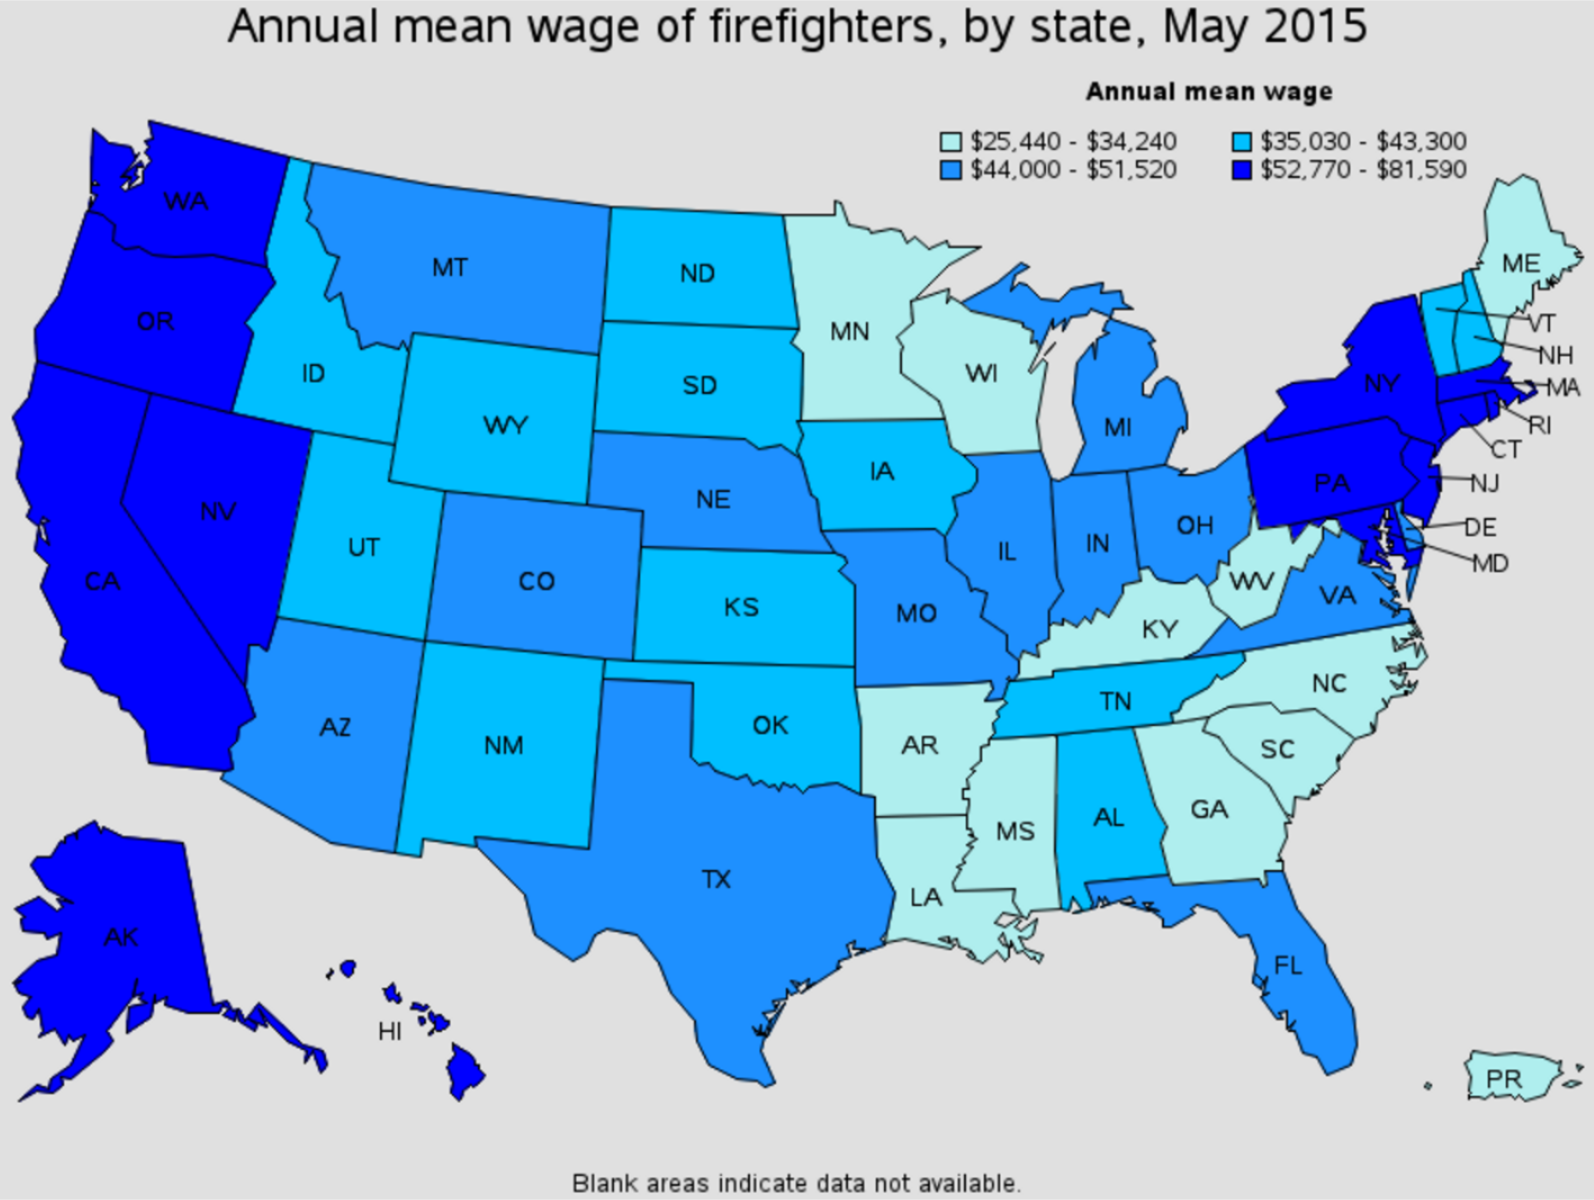 firefighter average salary by state Marlborough New Hampshire